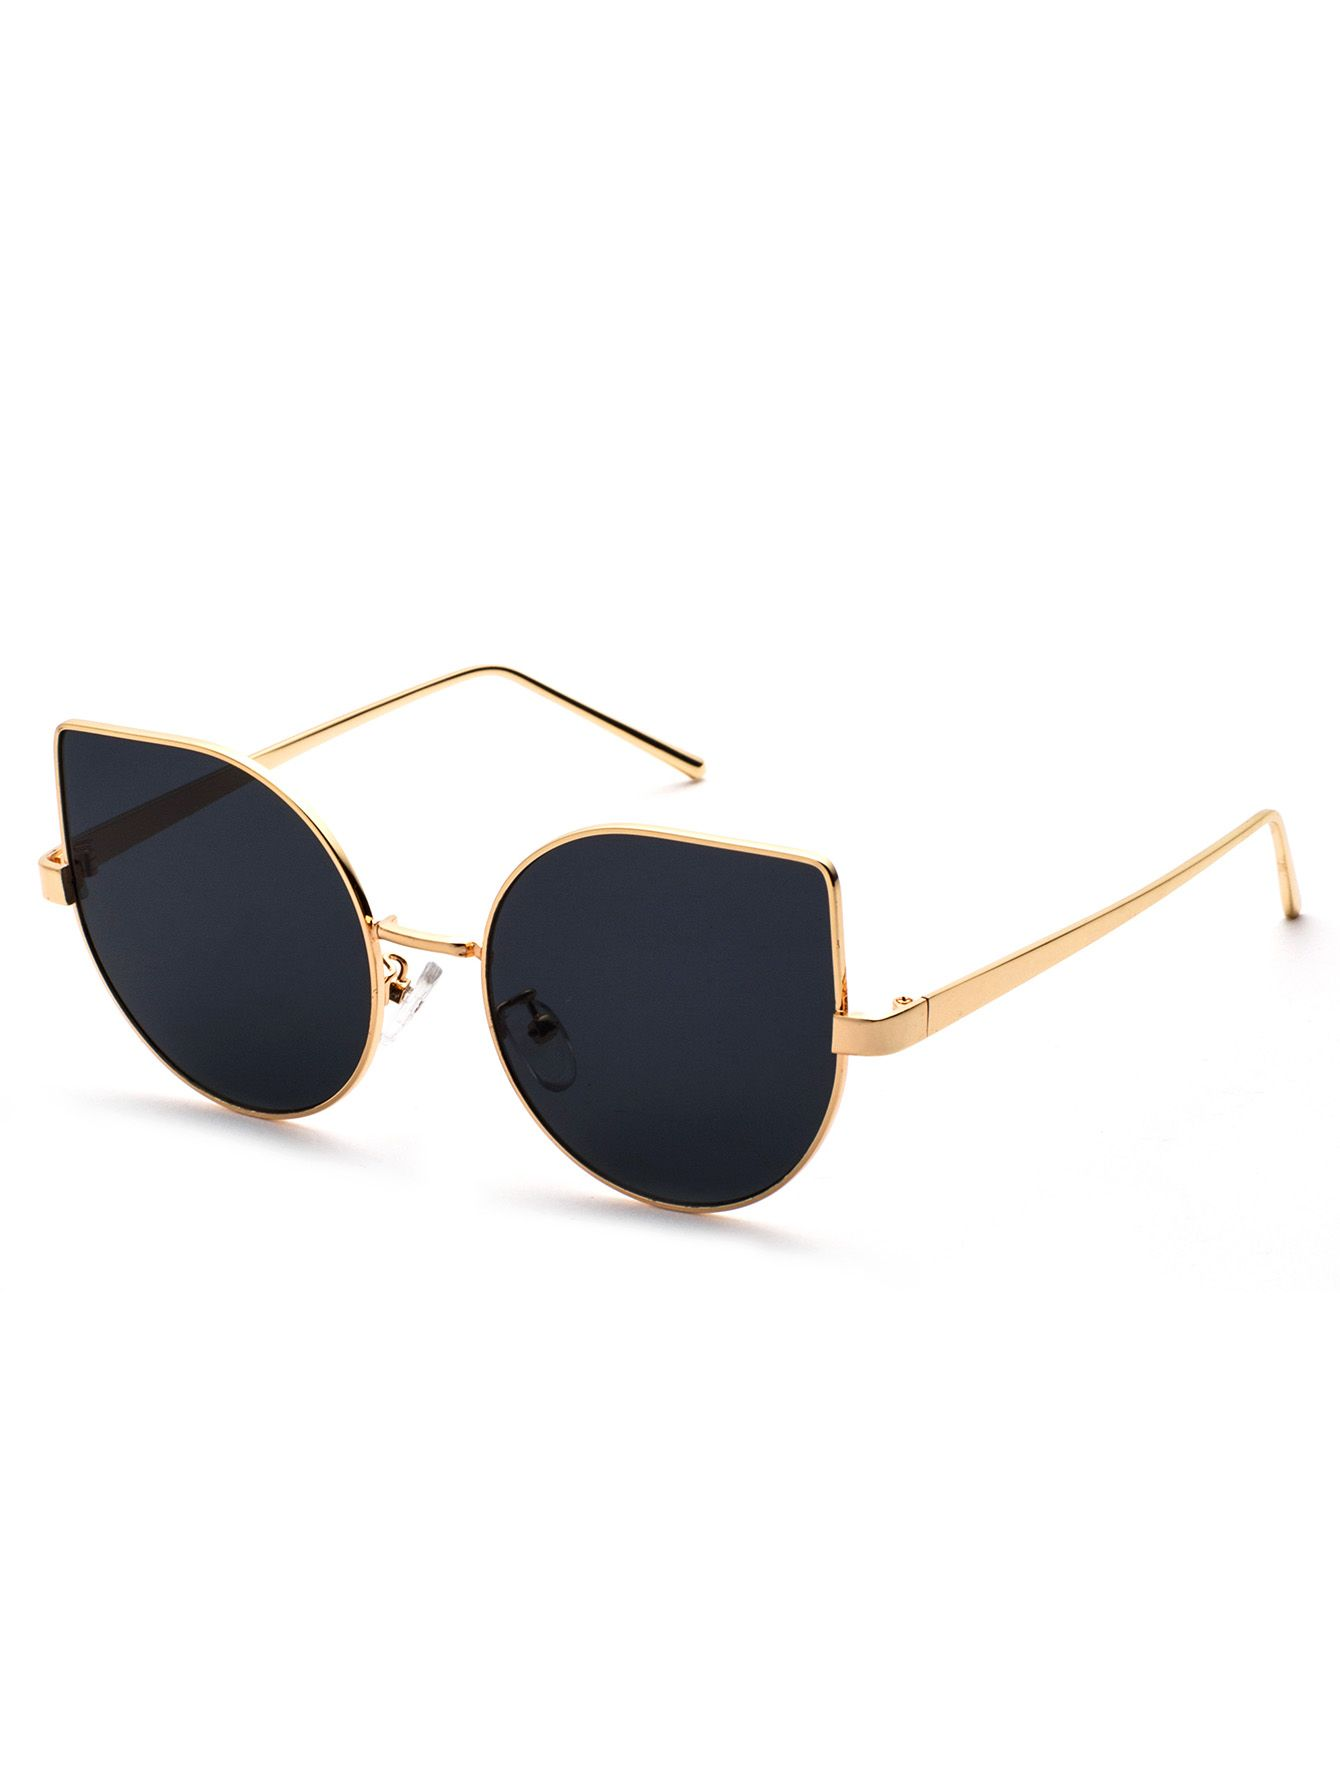 65b7a9be3c Shop Metal Frame Black Cat Eye Sunglasses online. SheIn offers Metal Frame  Black Cat Eye Sunglasses & more to fit your fashionable needs.